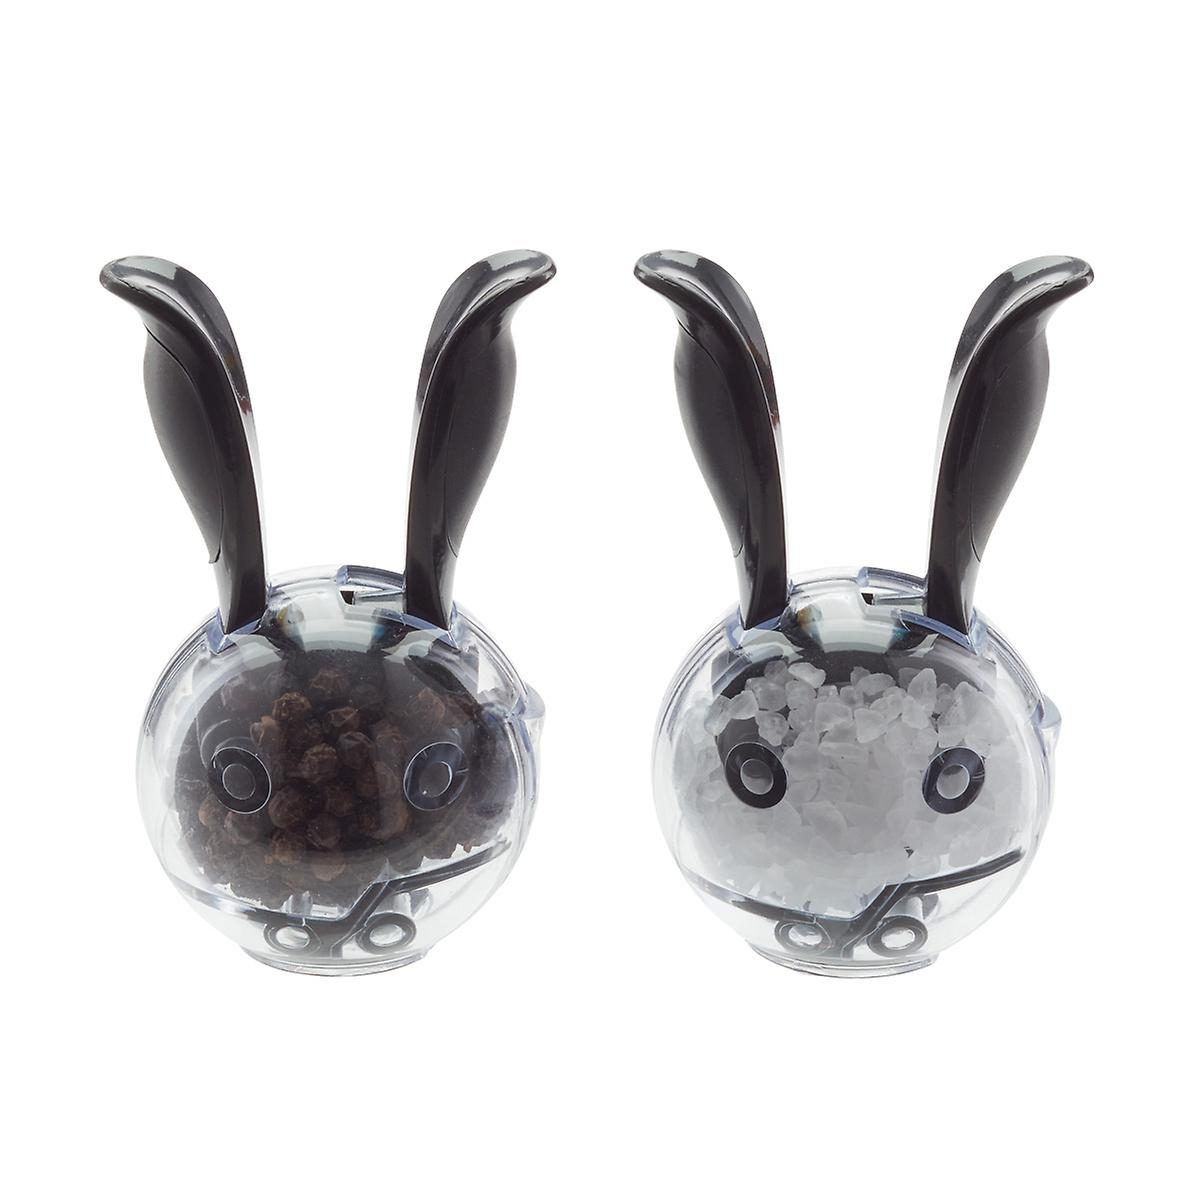 Mini Magnetic Salt & Pepper Grinder Set